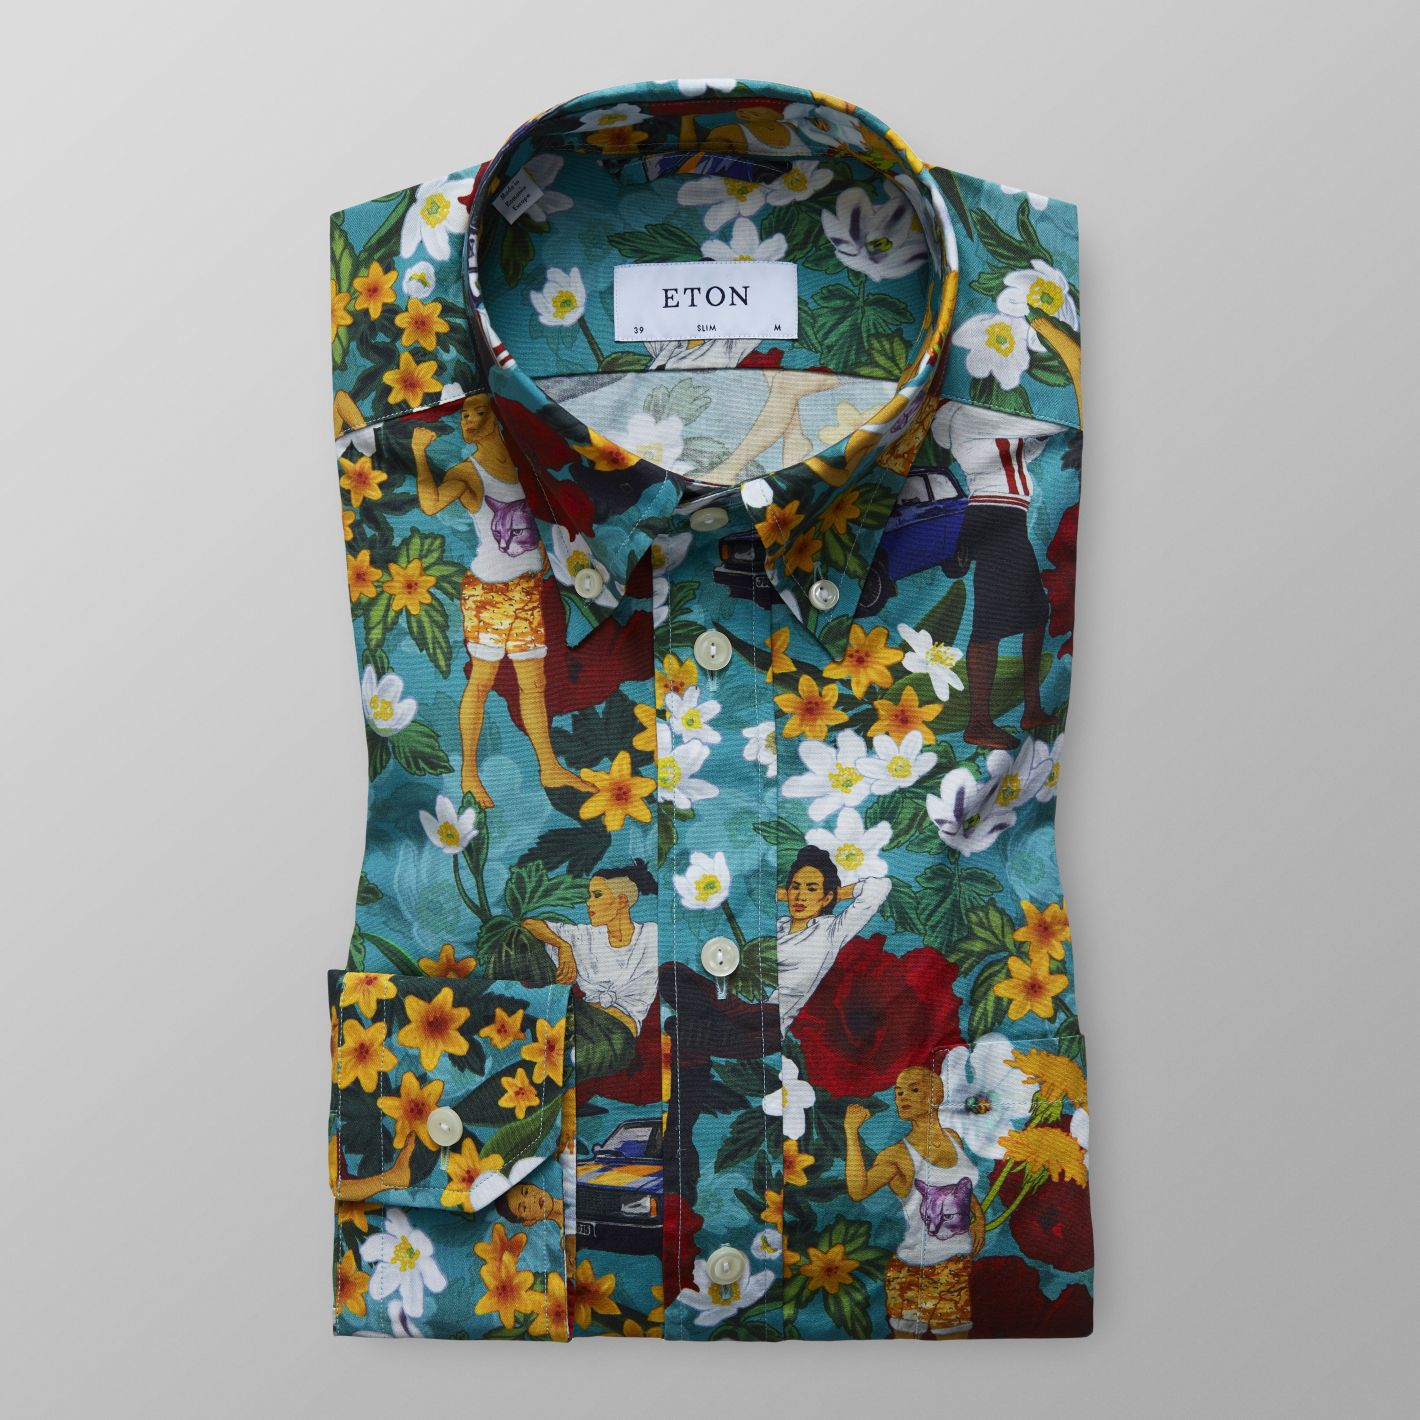 fcb84a045e58 Hawaiiskjorta - Slim fit | Eton Shirts Sverige